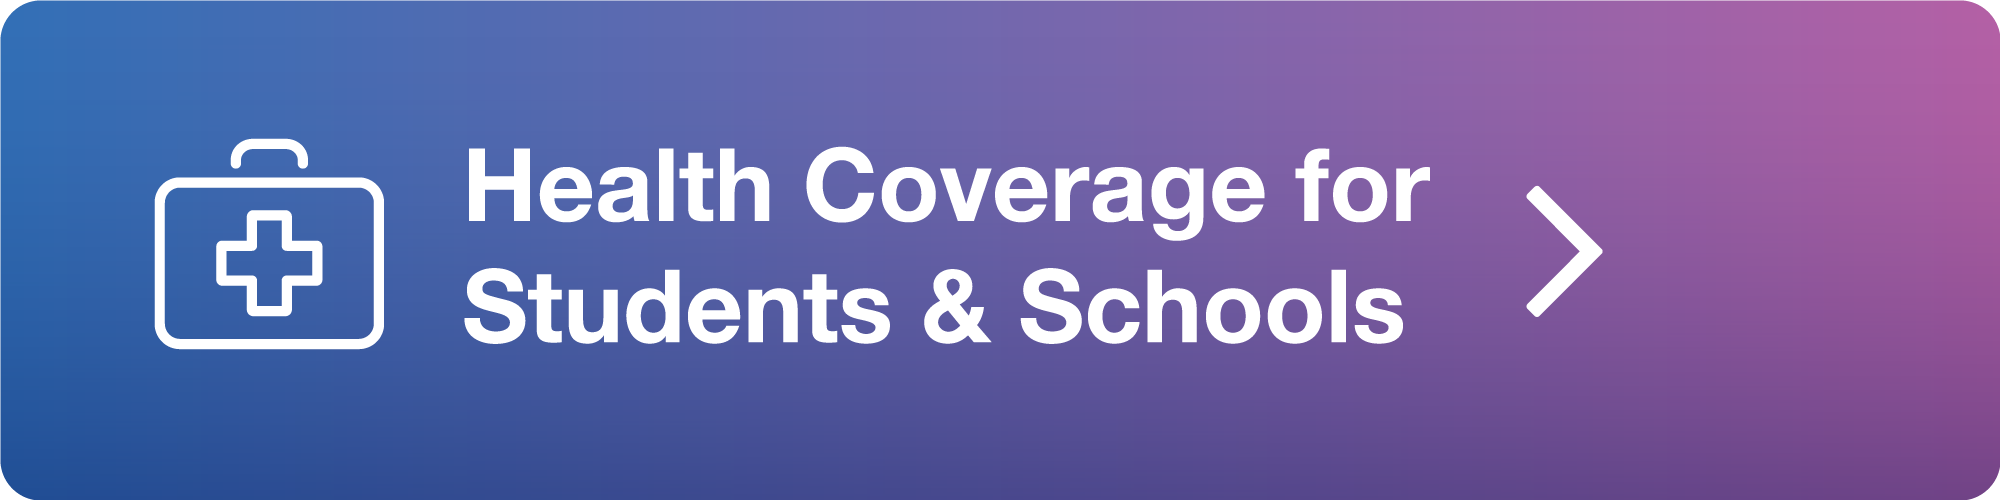 Health Coverage for Students & Schools